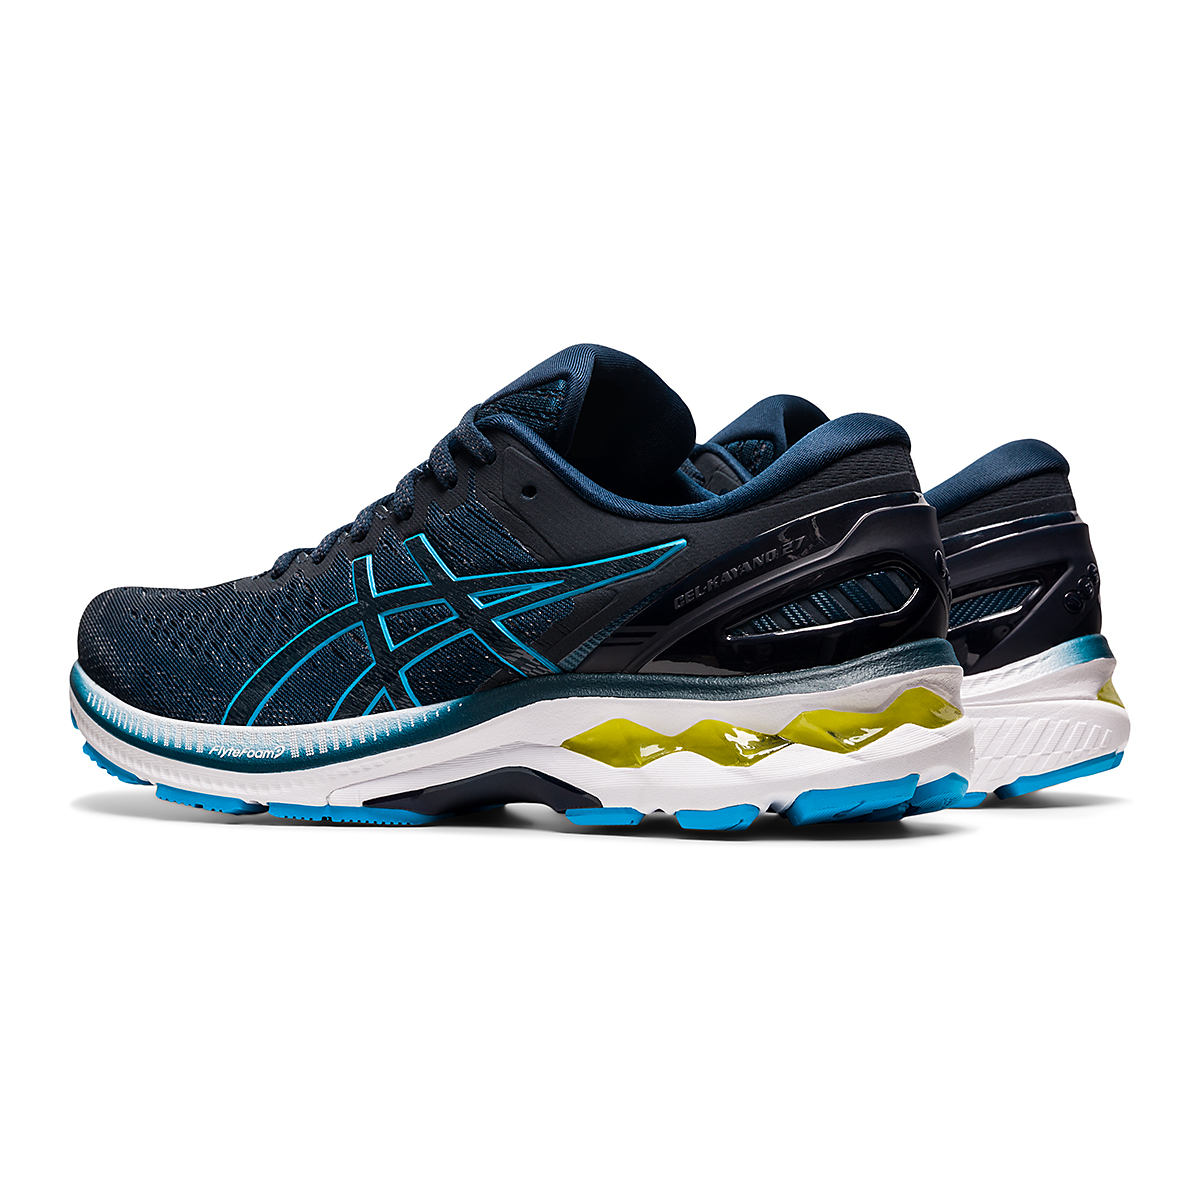 Men's Asics GEL-Kayano 27 Running Shoe - Color: French Blue/Dig - Size: 7.5 - Width: Regular, French Blue/Dig, large, image 4